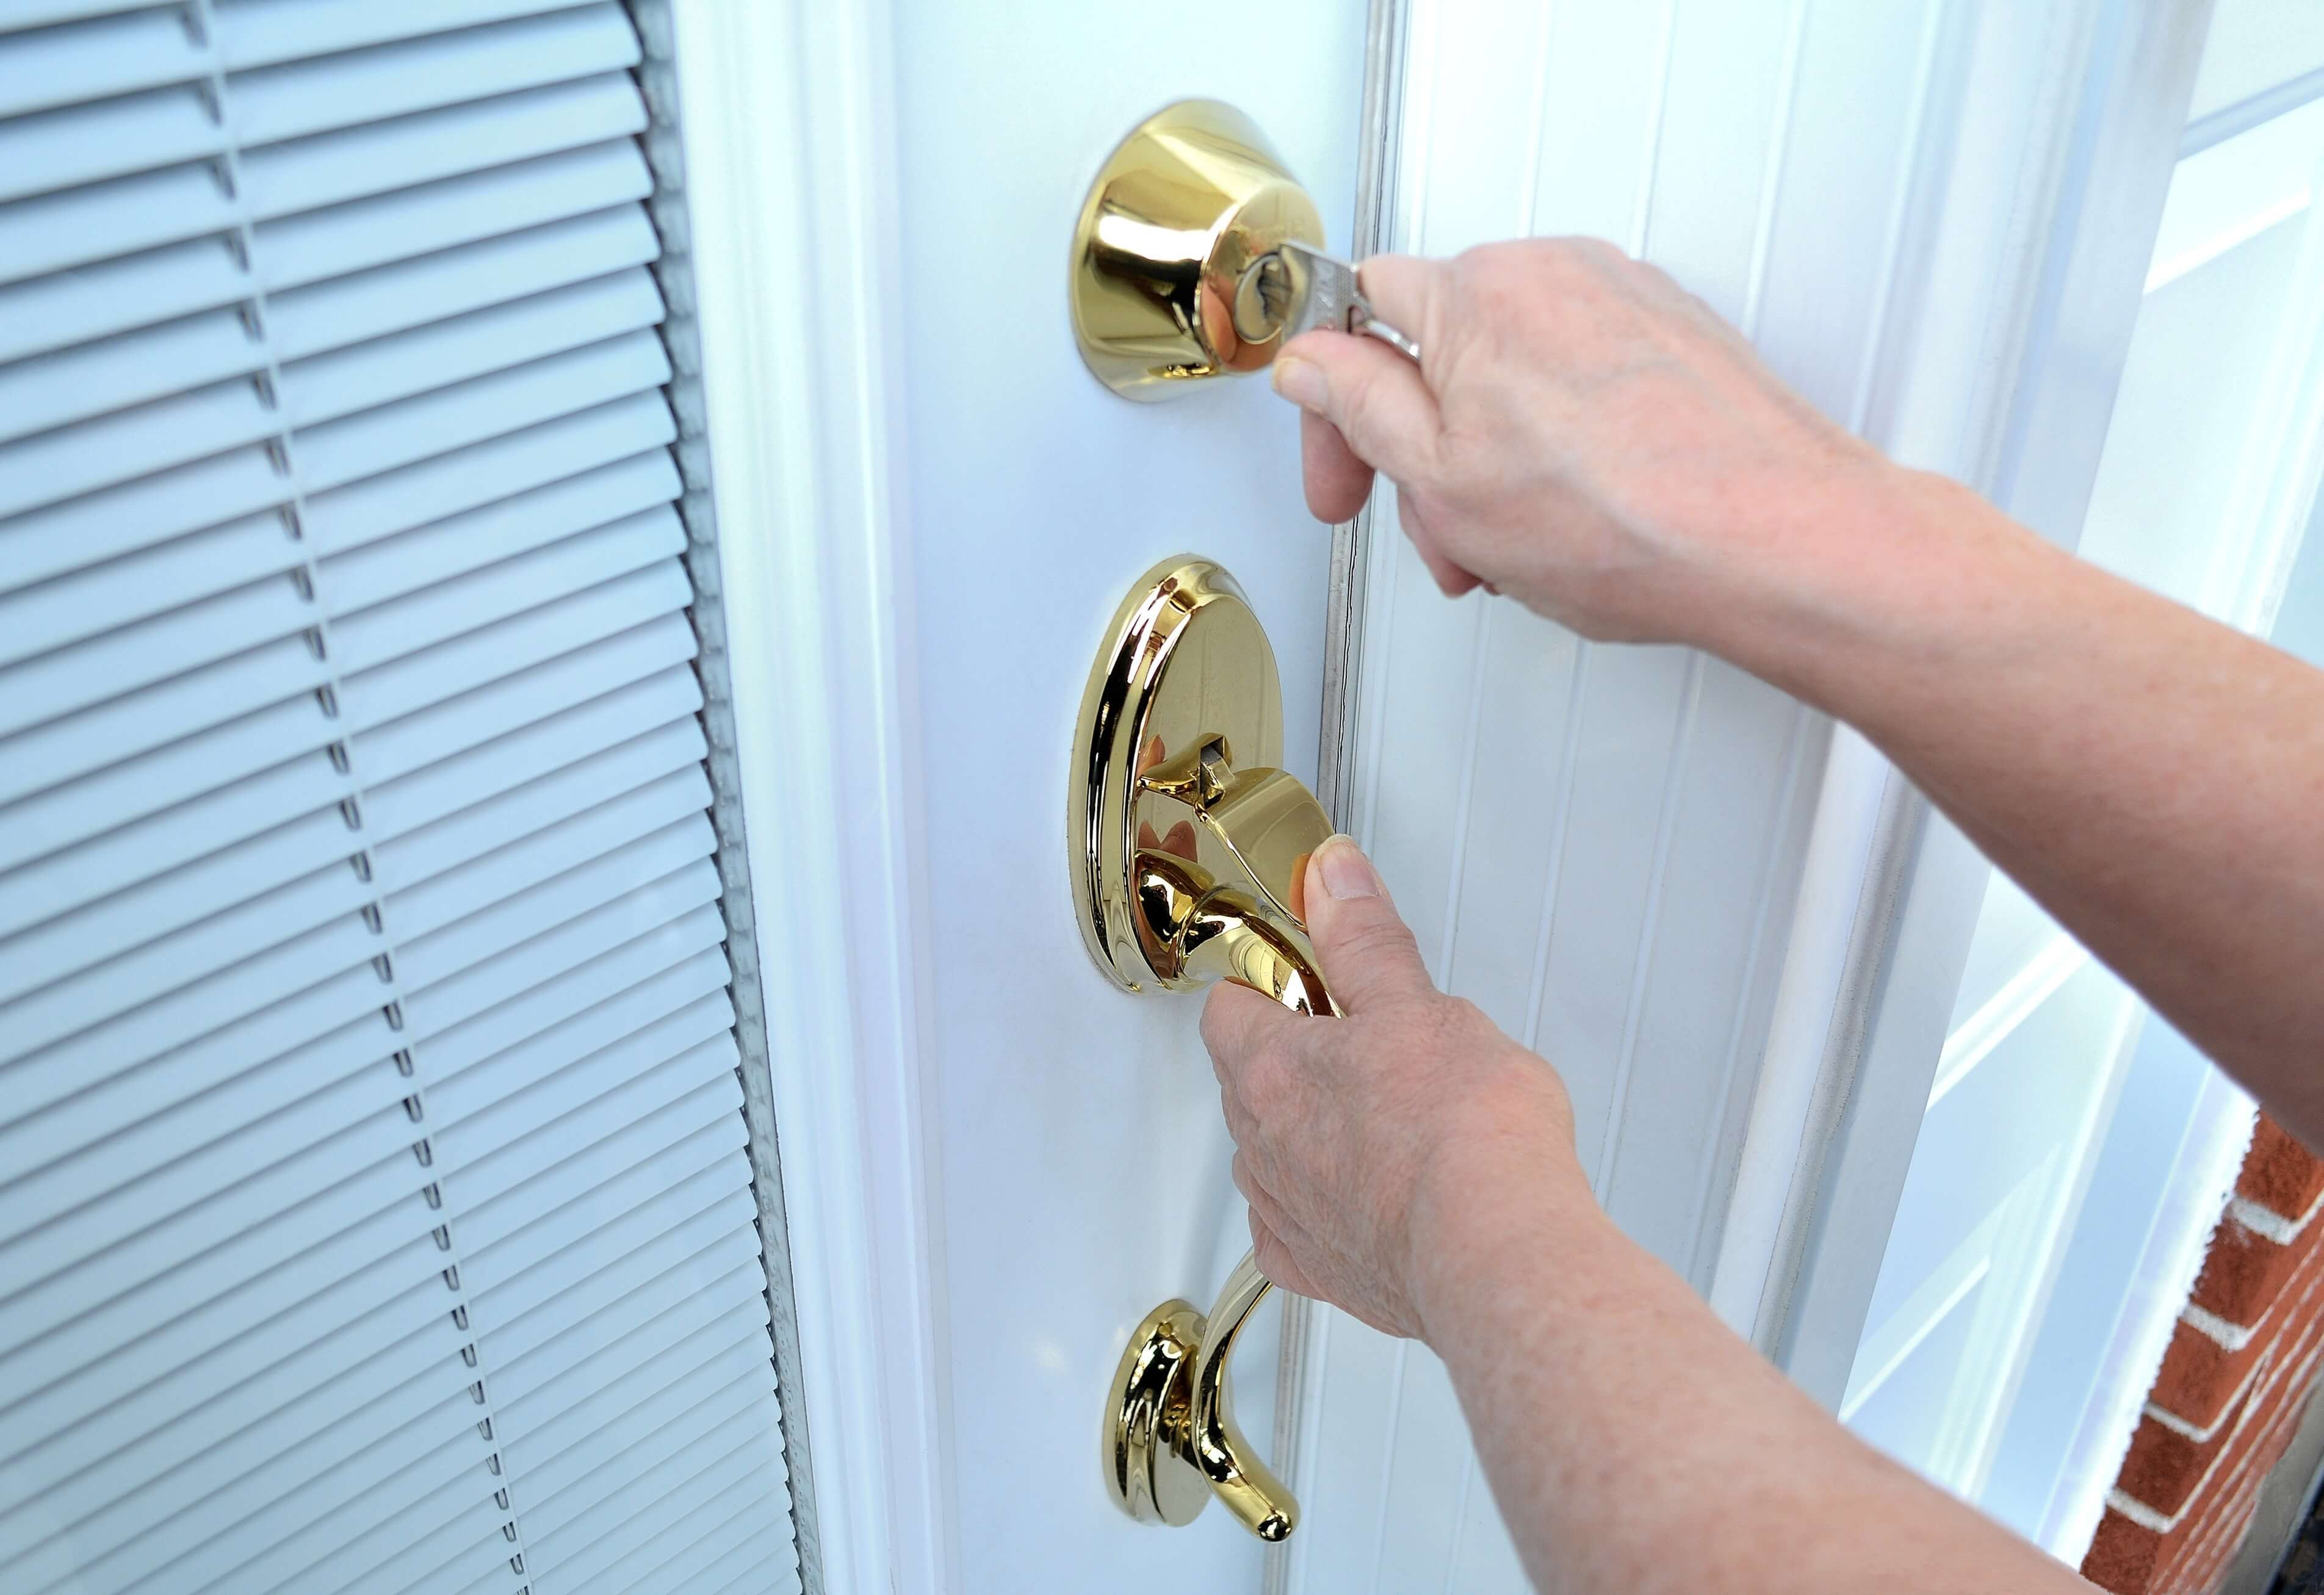 Under What Circumstances Should I Consider Calling a Locksmith to Change my House Locks?